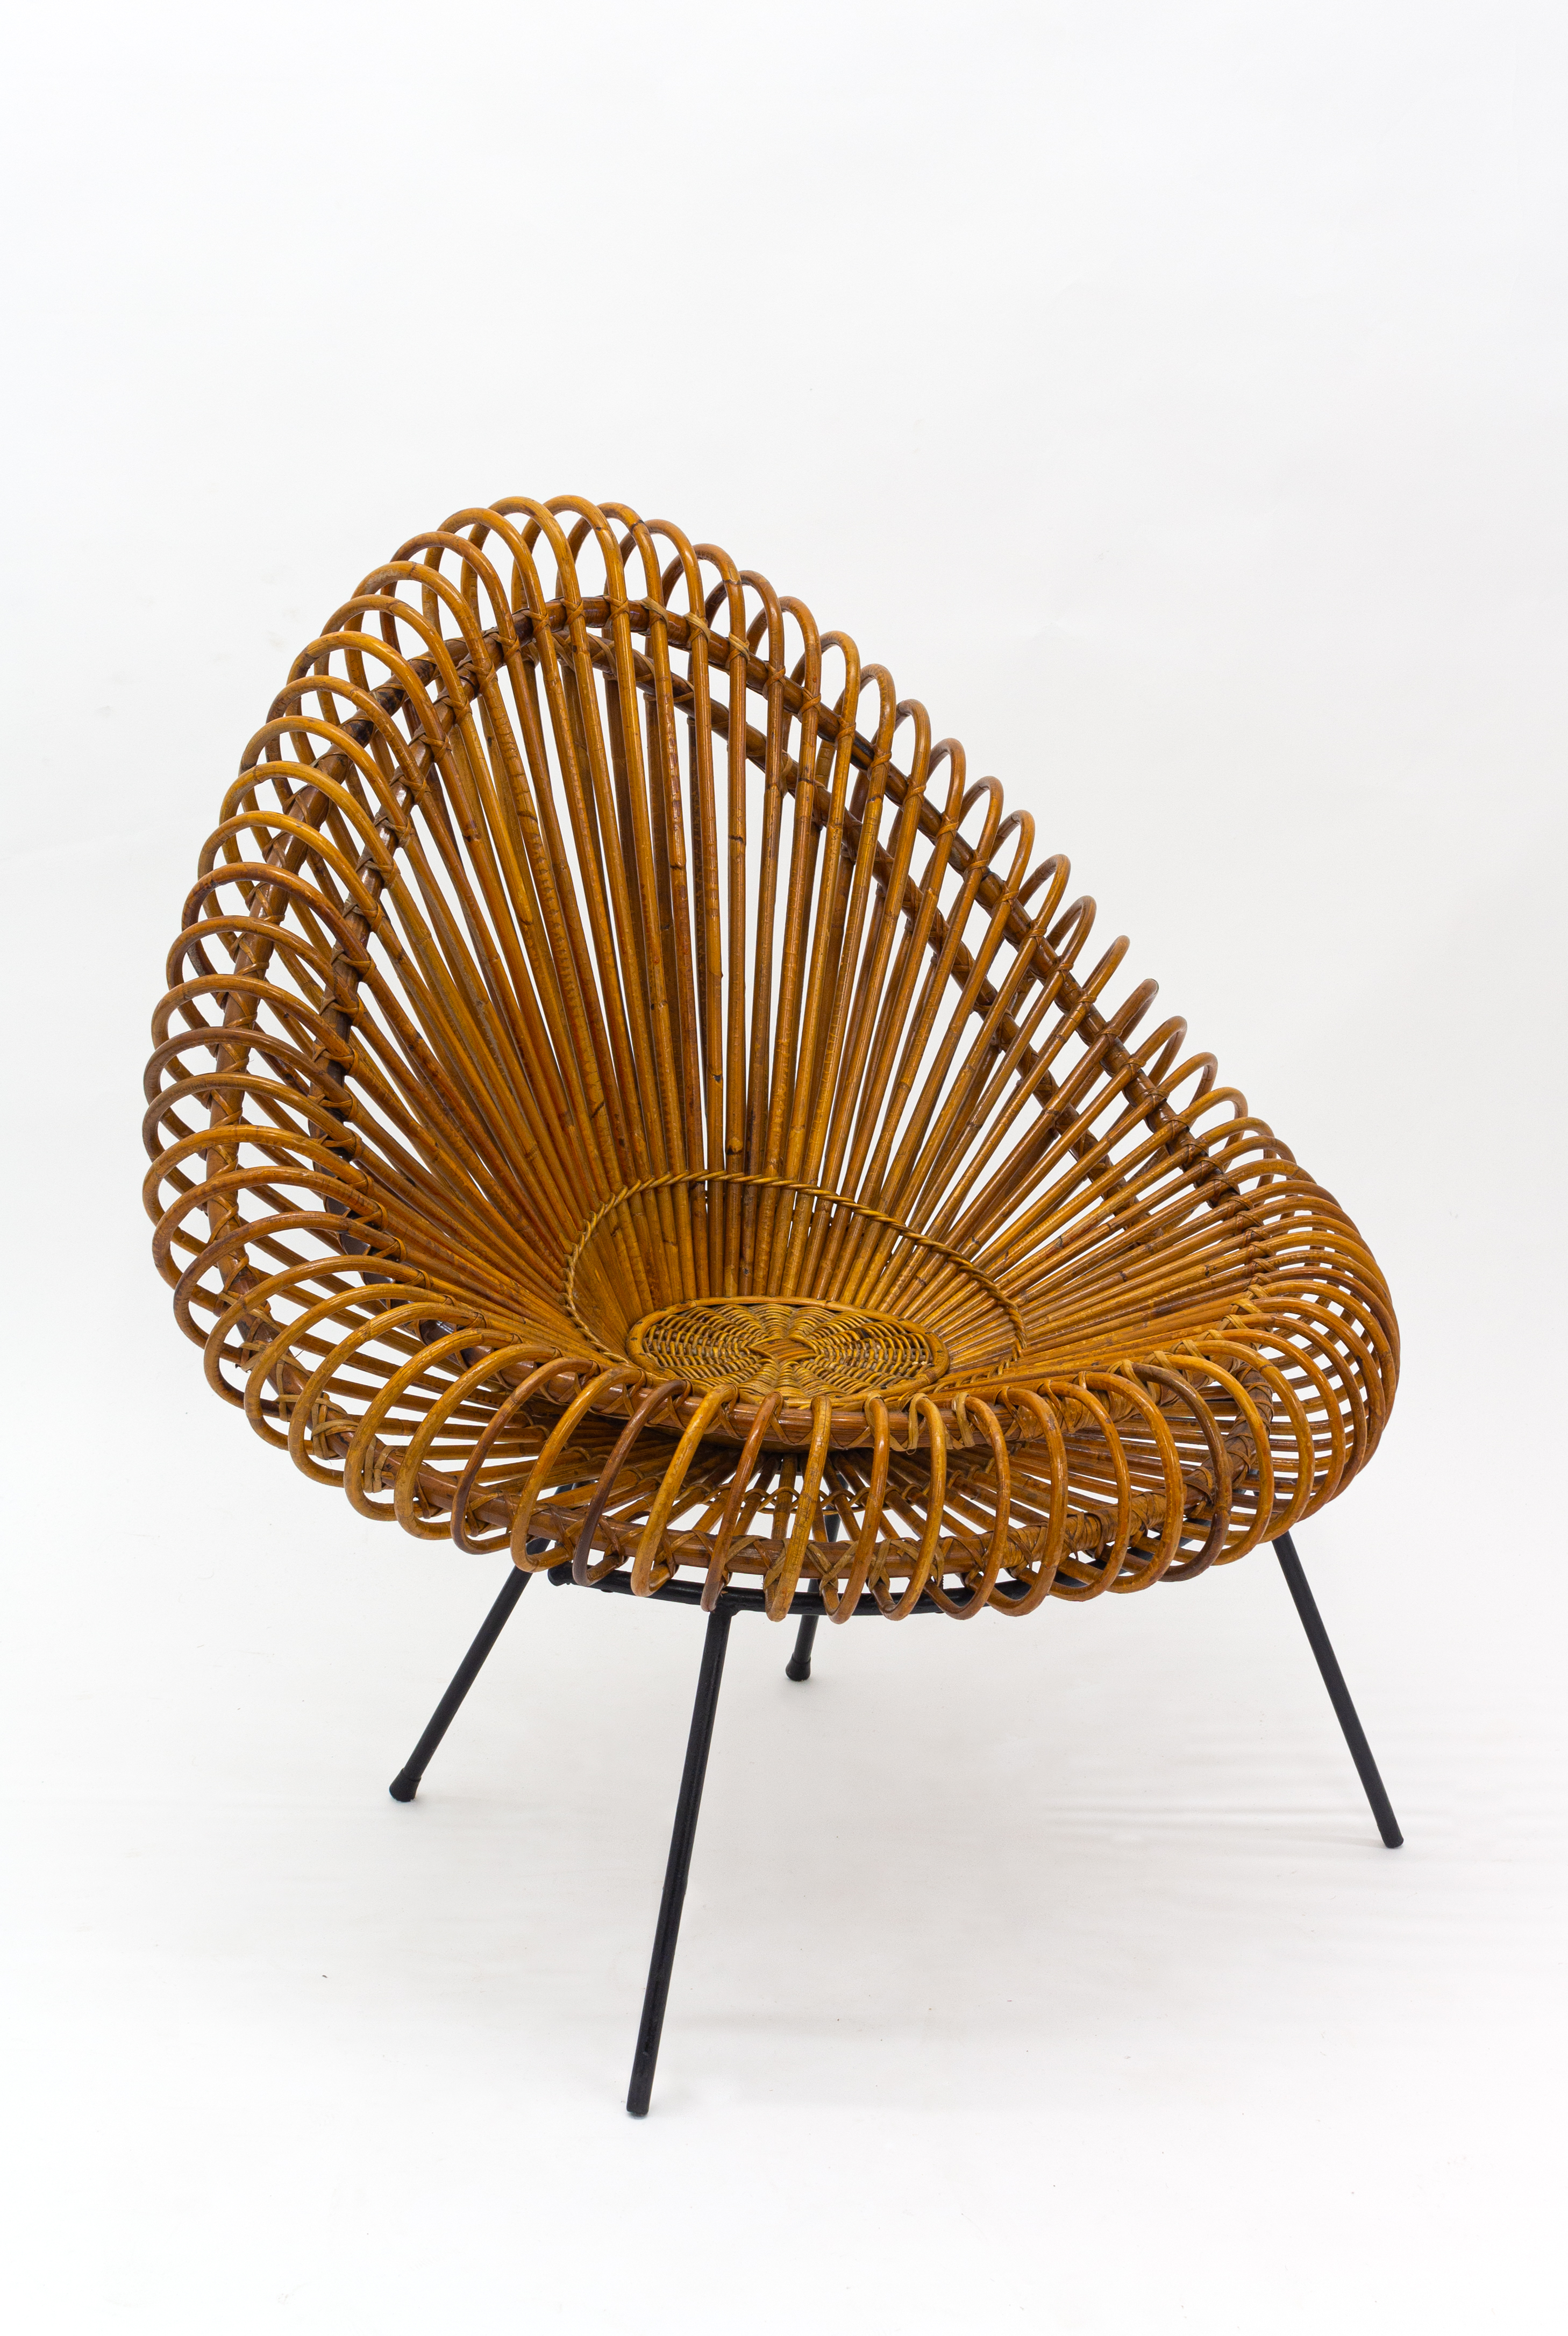 A stylish rattan and iron chair designed by Janine Abraham.